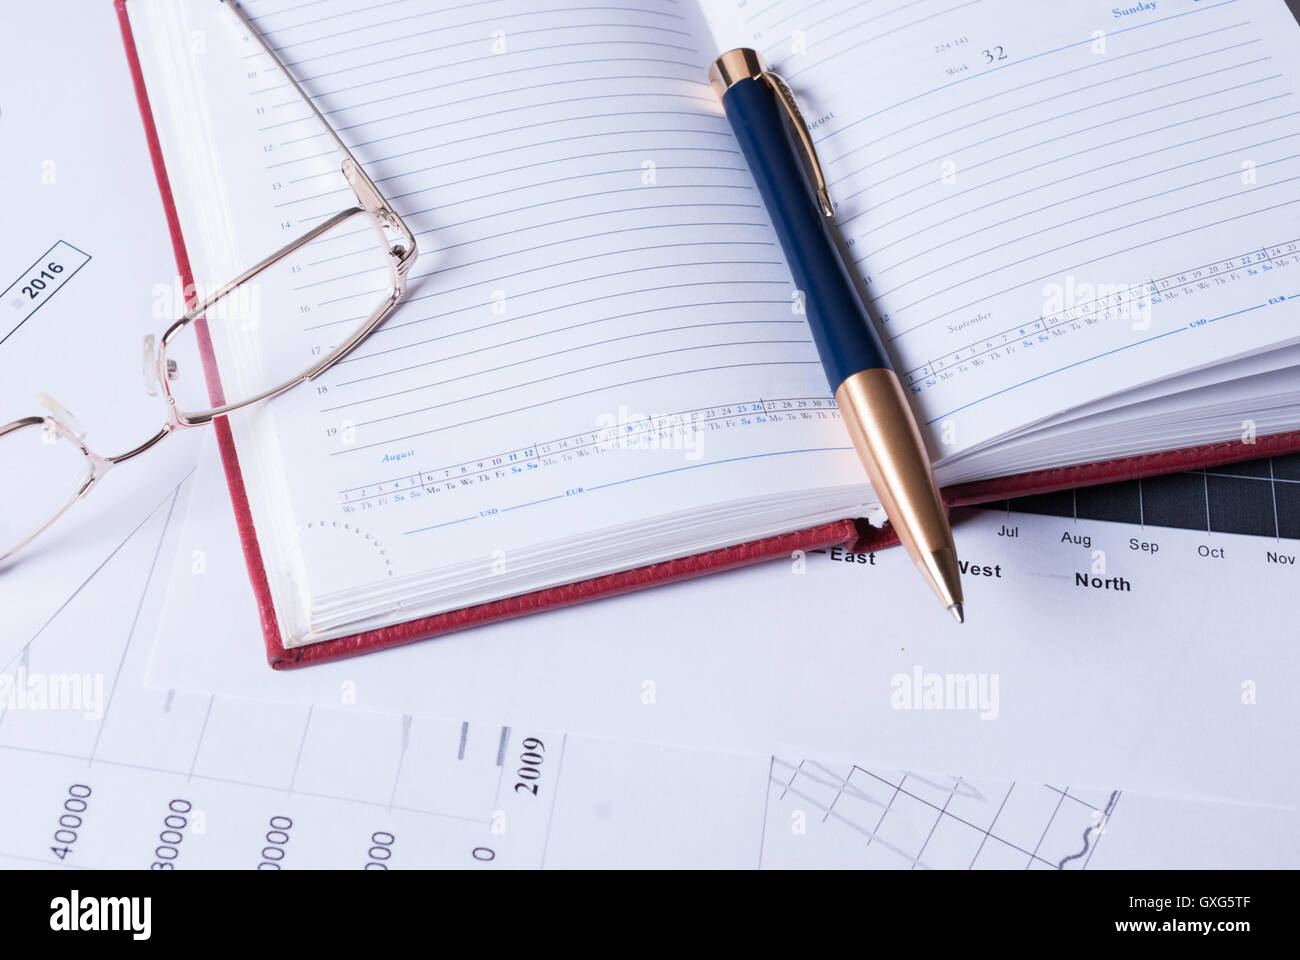 Notebook, pen and glasses on top of financial charts - Stock Image